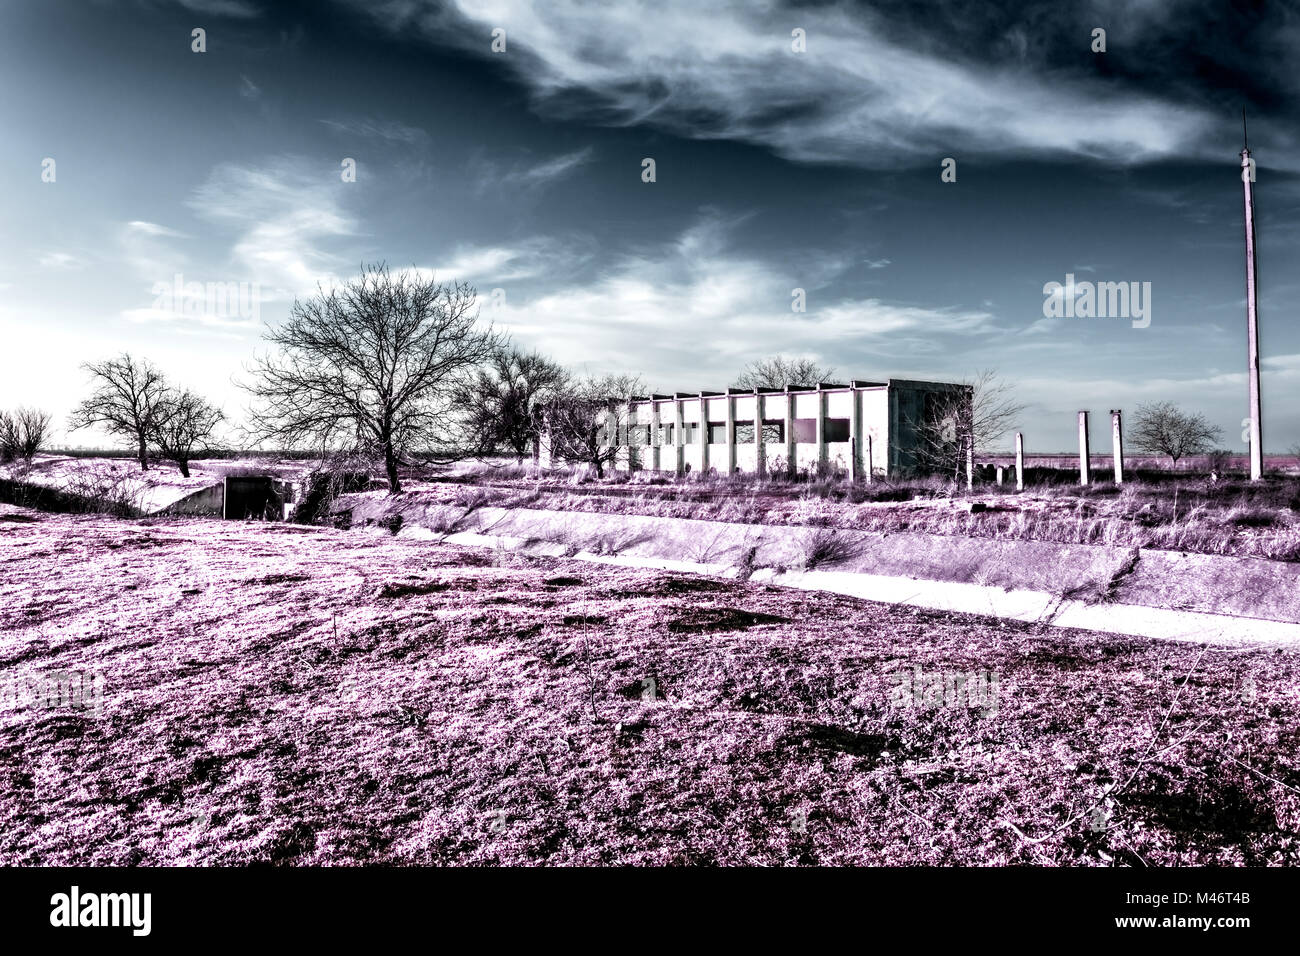 Abandoned electric station in infrared colors. Post-apocalyptic infrared landscape. - Stock Image